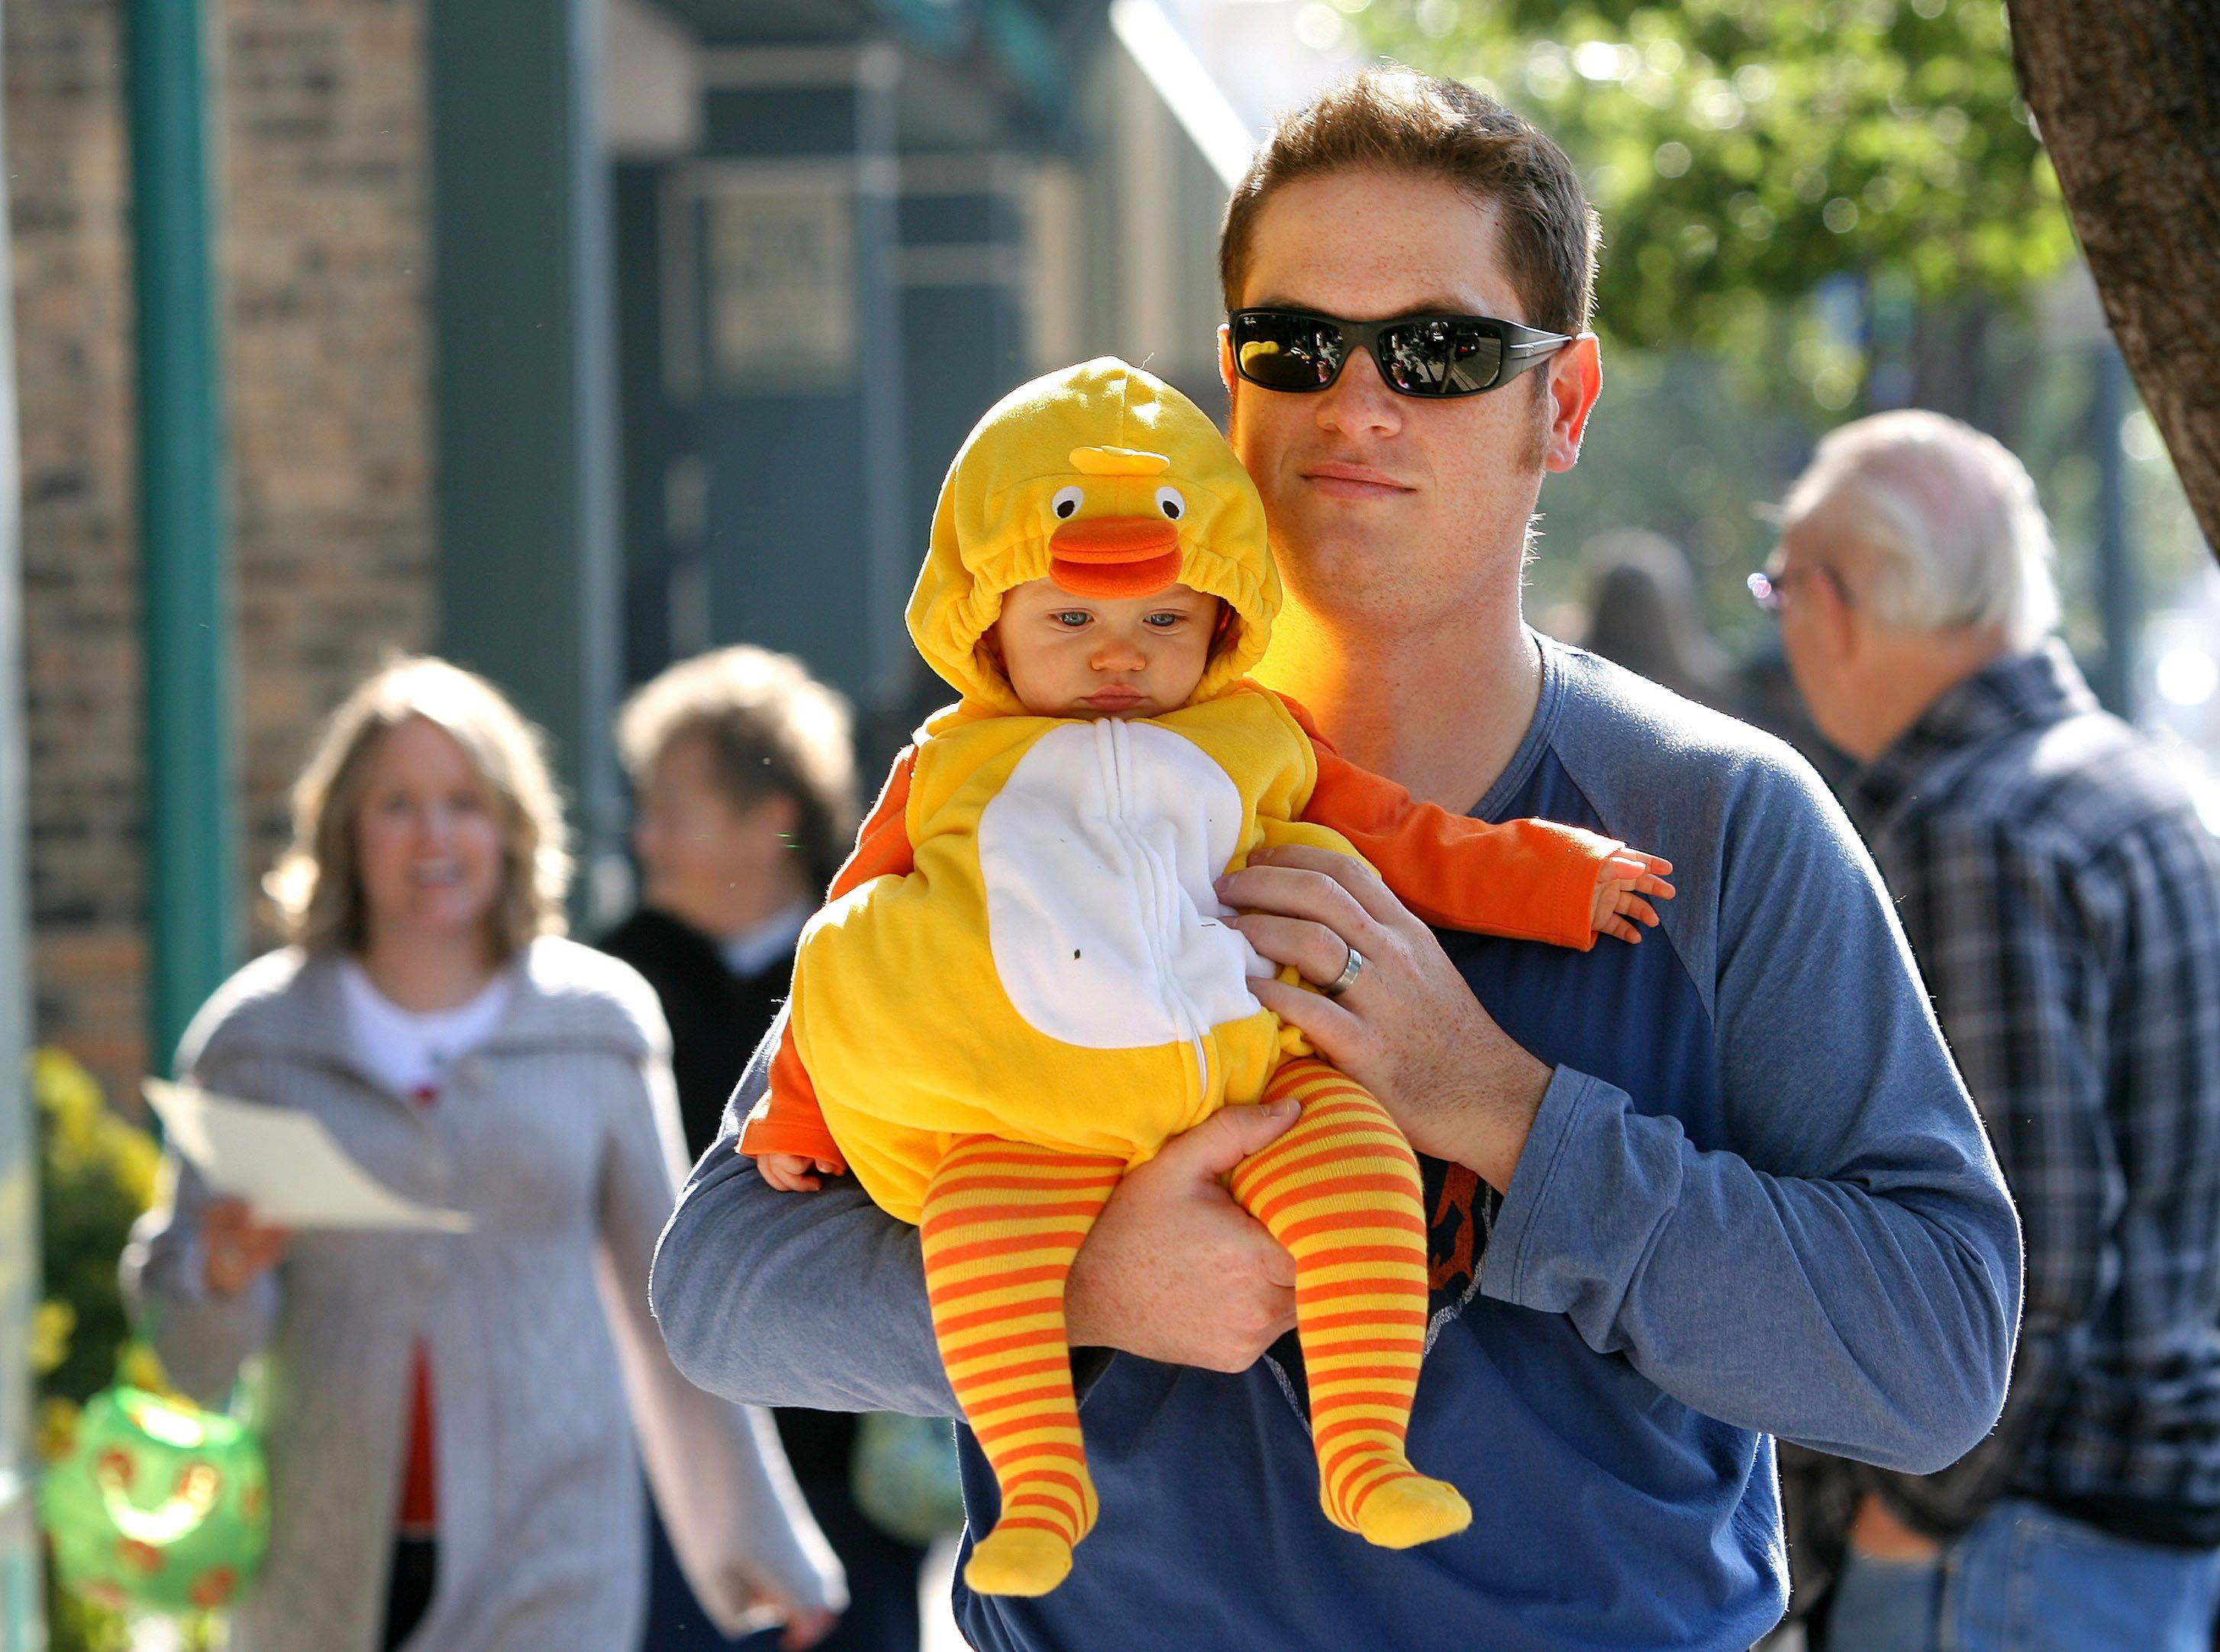 David Luacas of Grayslake holds his 10-month-old daughter Avery as they trick-or-treat on Milwaukee Avenue in downtown Libertyville Friday.